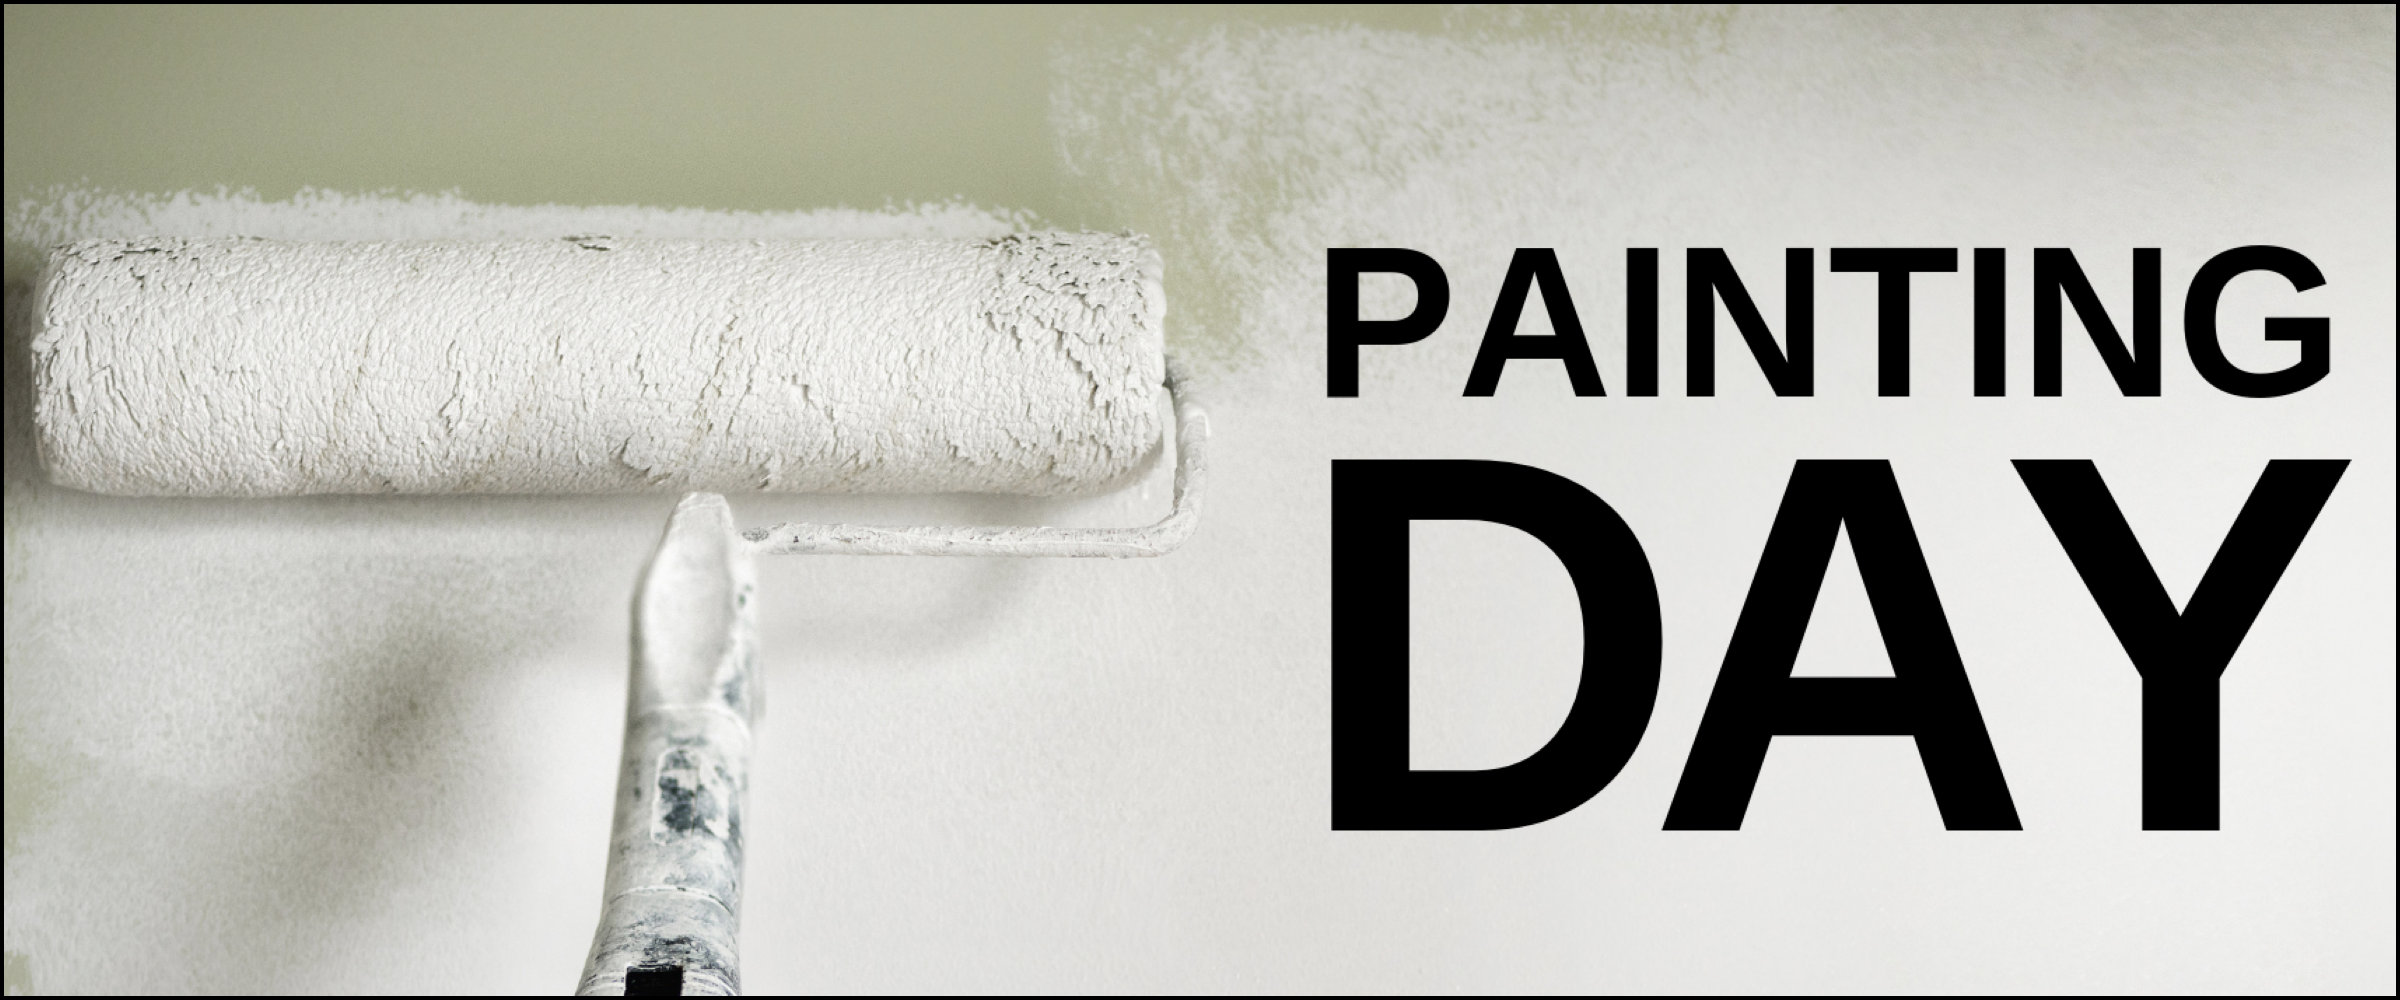 PAINTING DAY (2.4X1).001.png